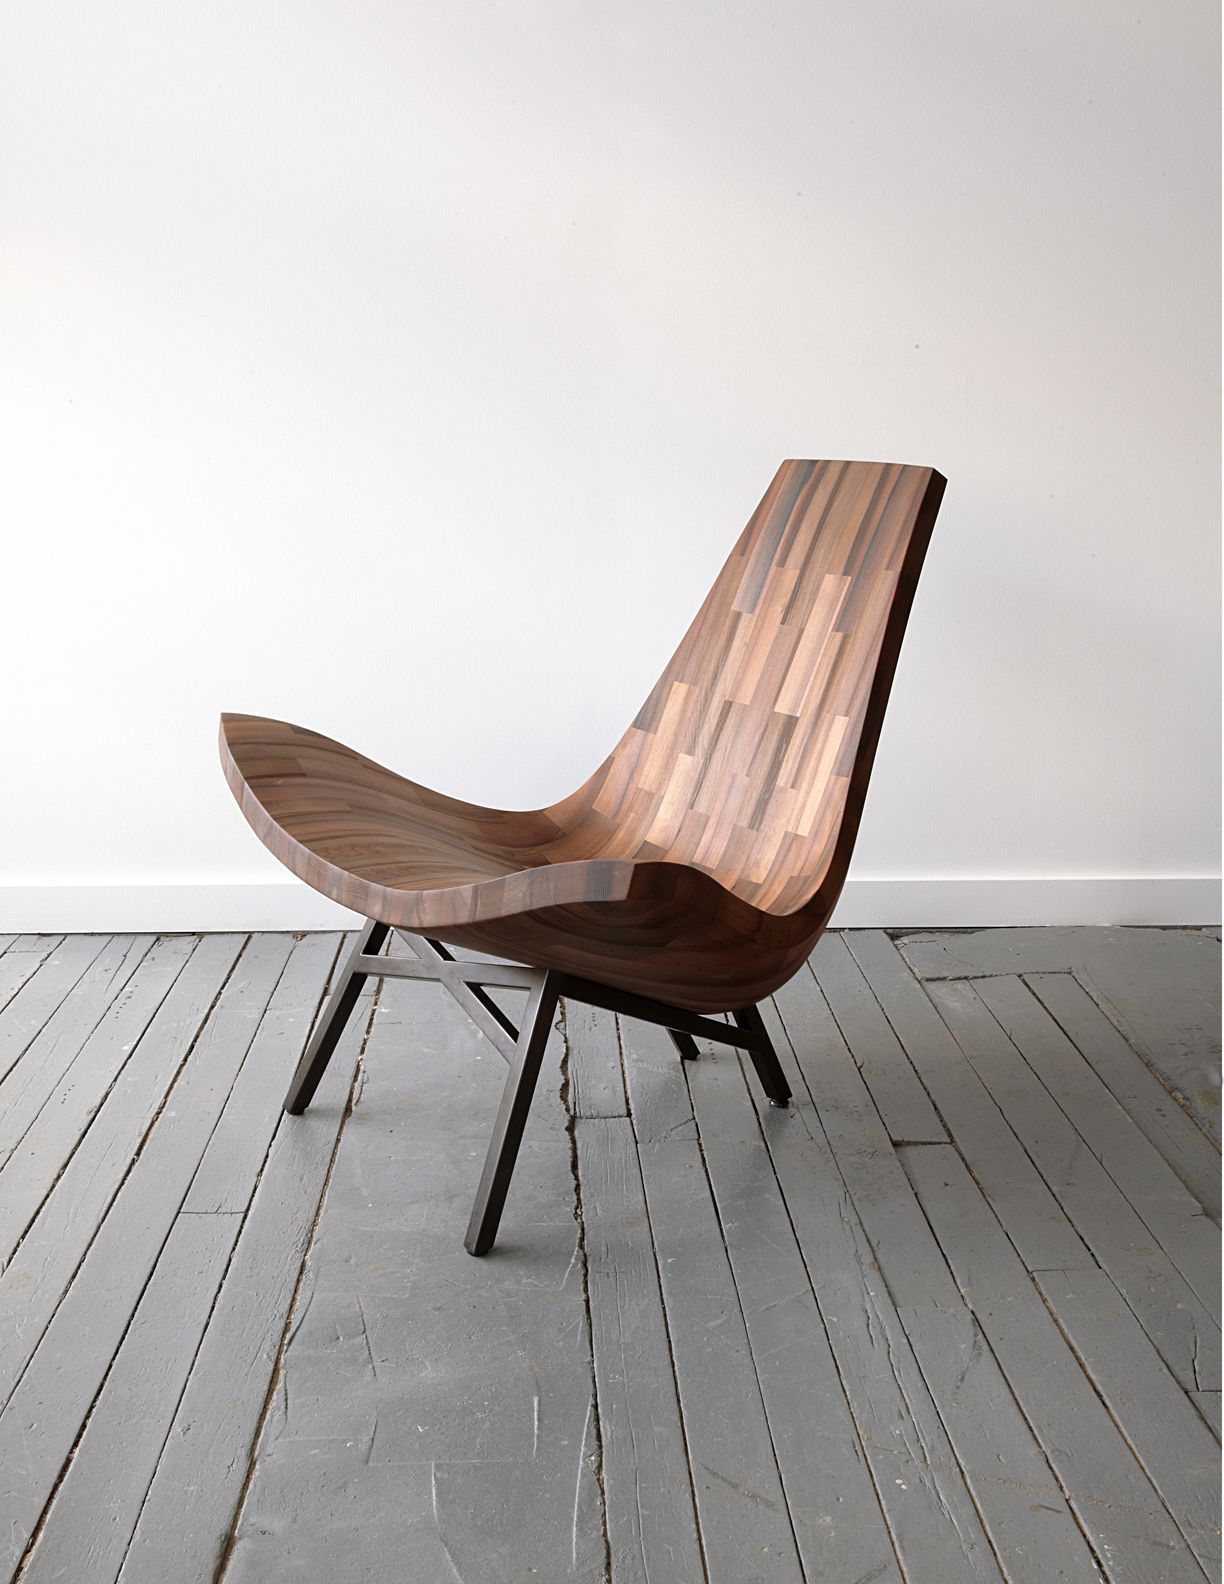 Water Tower Chair By Bellboy (Mat Driscoll)   Made From The Reclaimed  Redwood Staves